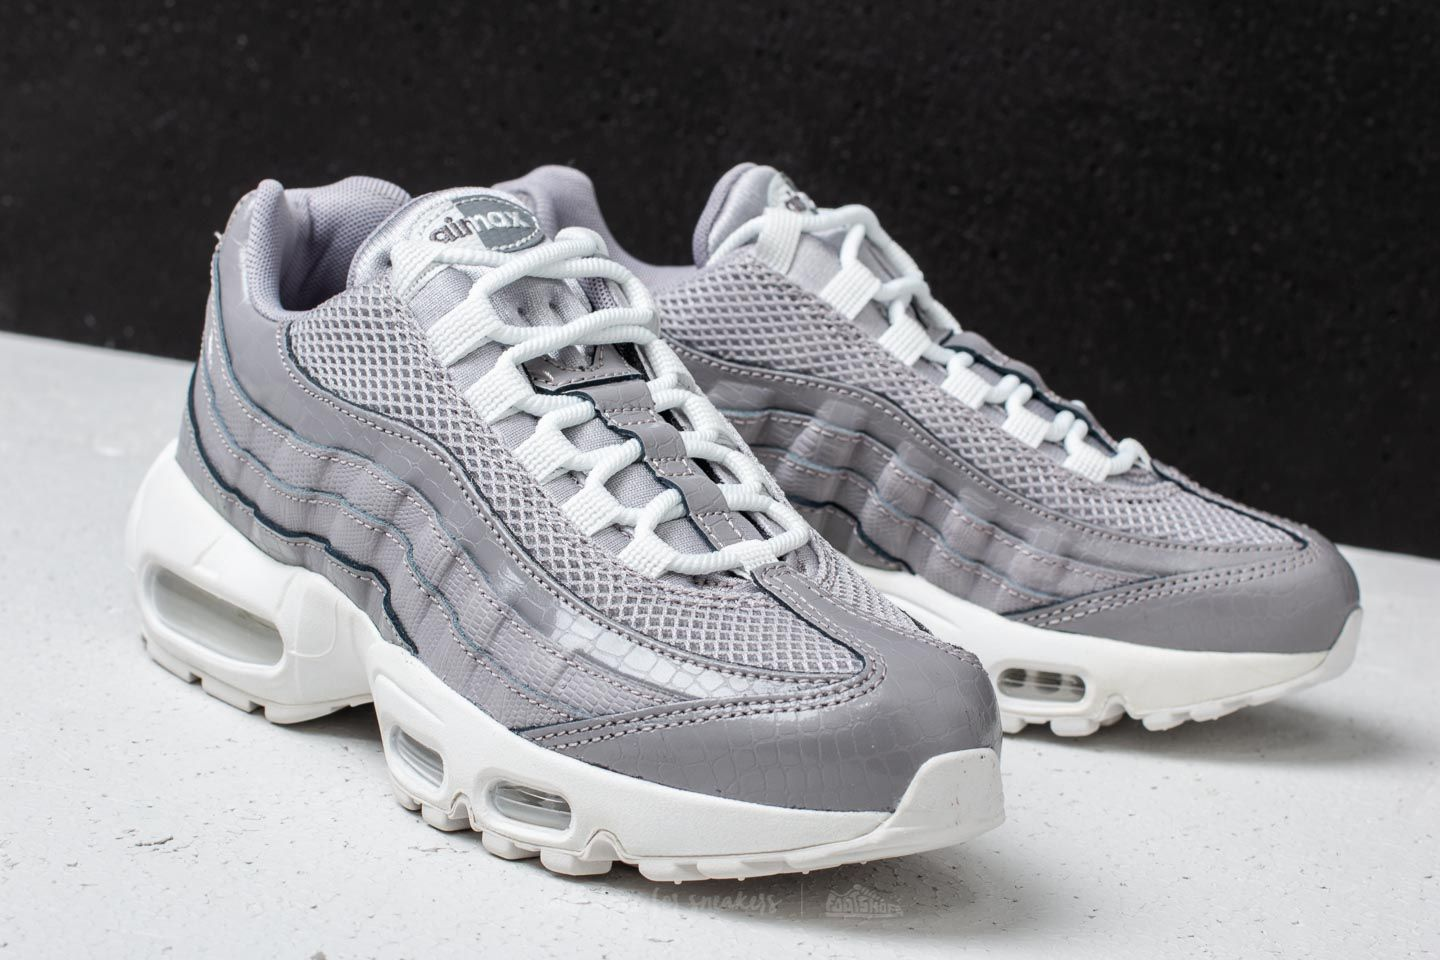 hot sales 68460 0ebc0 Nike Wmns Air Max 95 Premium Atmosphere Grey | Footshop